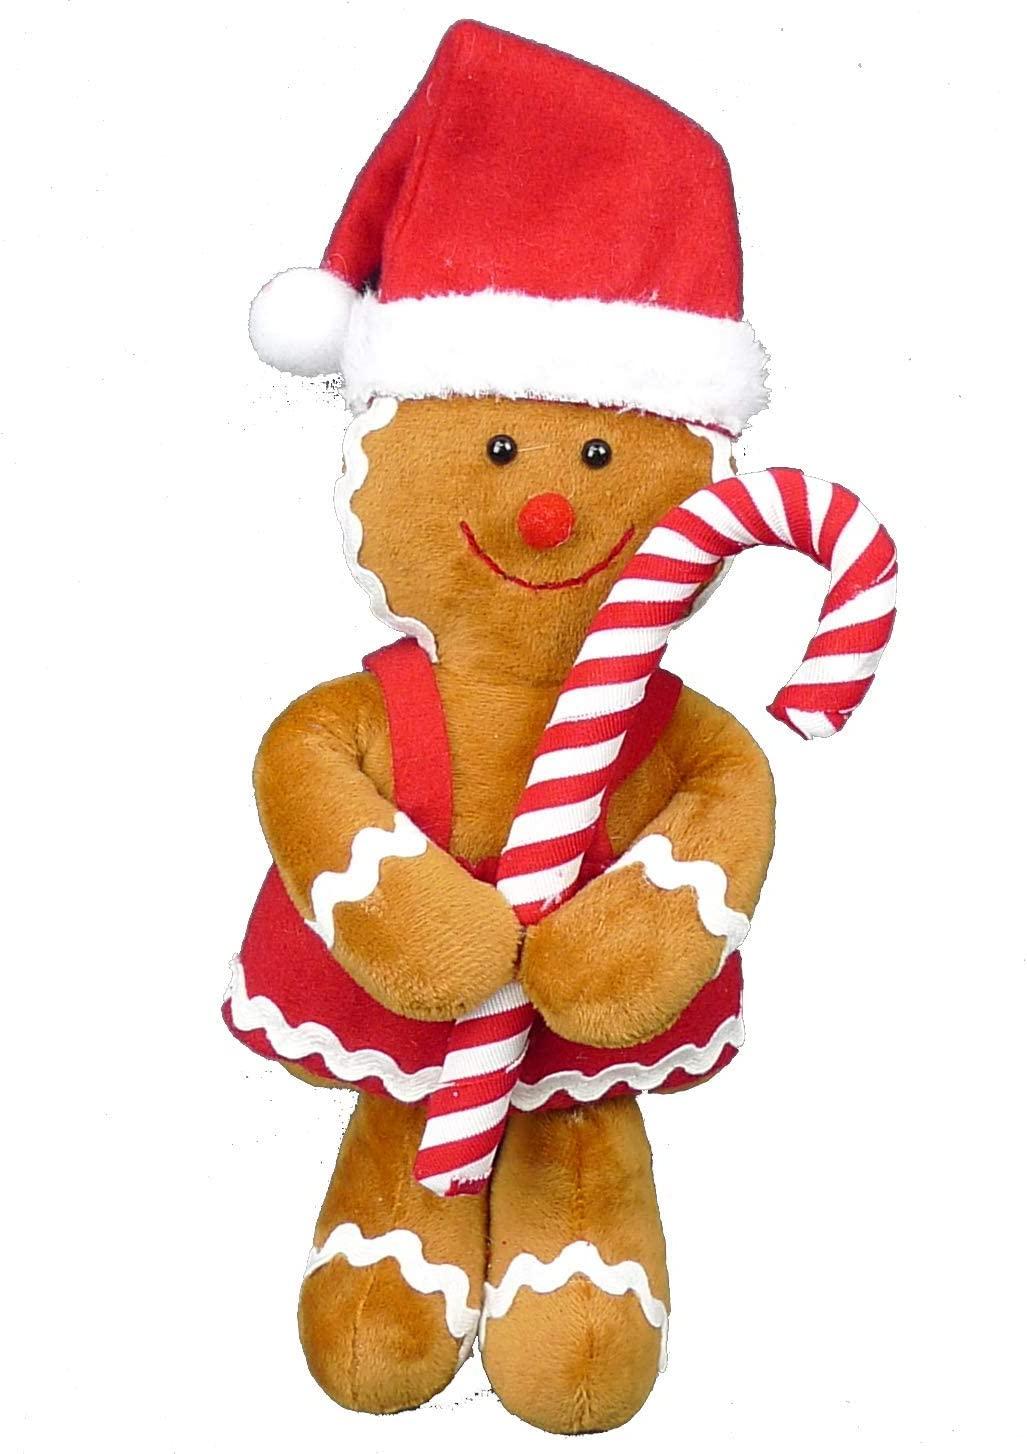 RED Liberty 10 Gingerbread Chef and//or Gingerbread Helper 10 Buyer CAN Choose Either OR Both! Female Helper